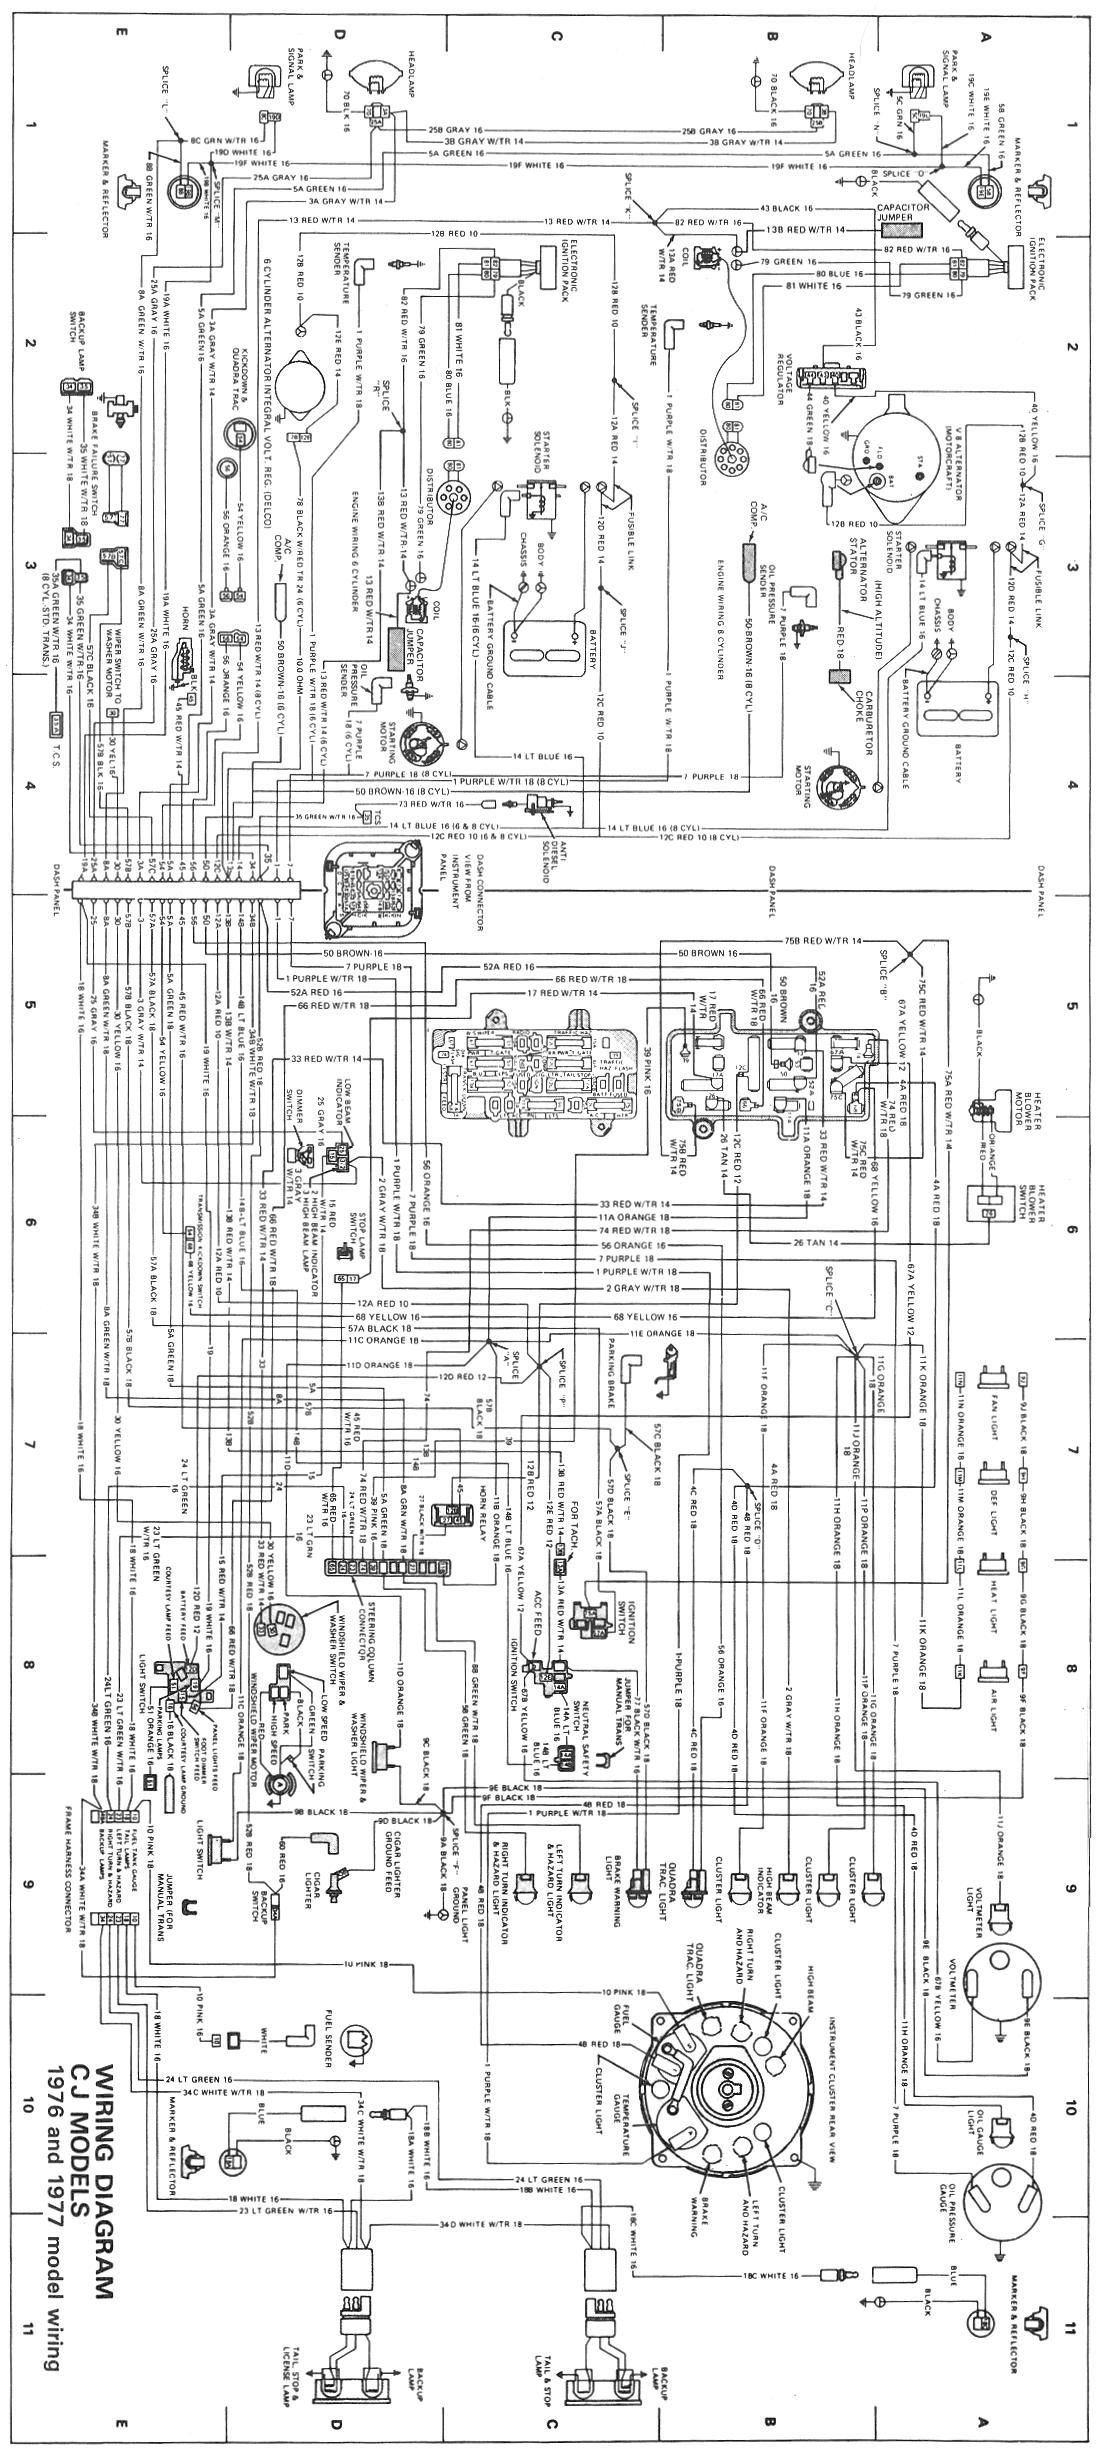 hight resolution of jeep wiring diagrams 1976 and 1977 cj jeep wiring pinterest 1974 jeep cj5 wiring diagram jeep cj5 wiring schematic